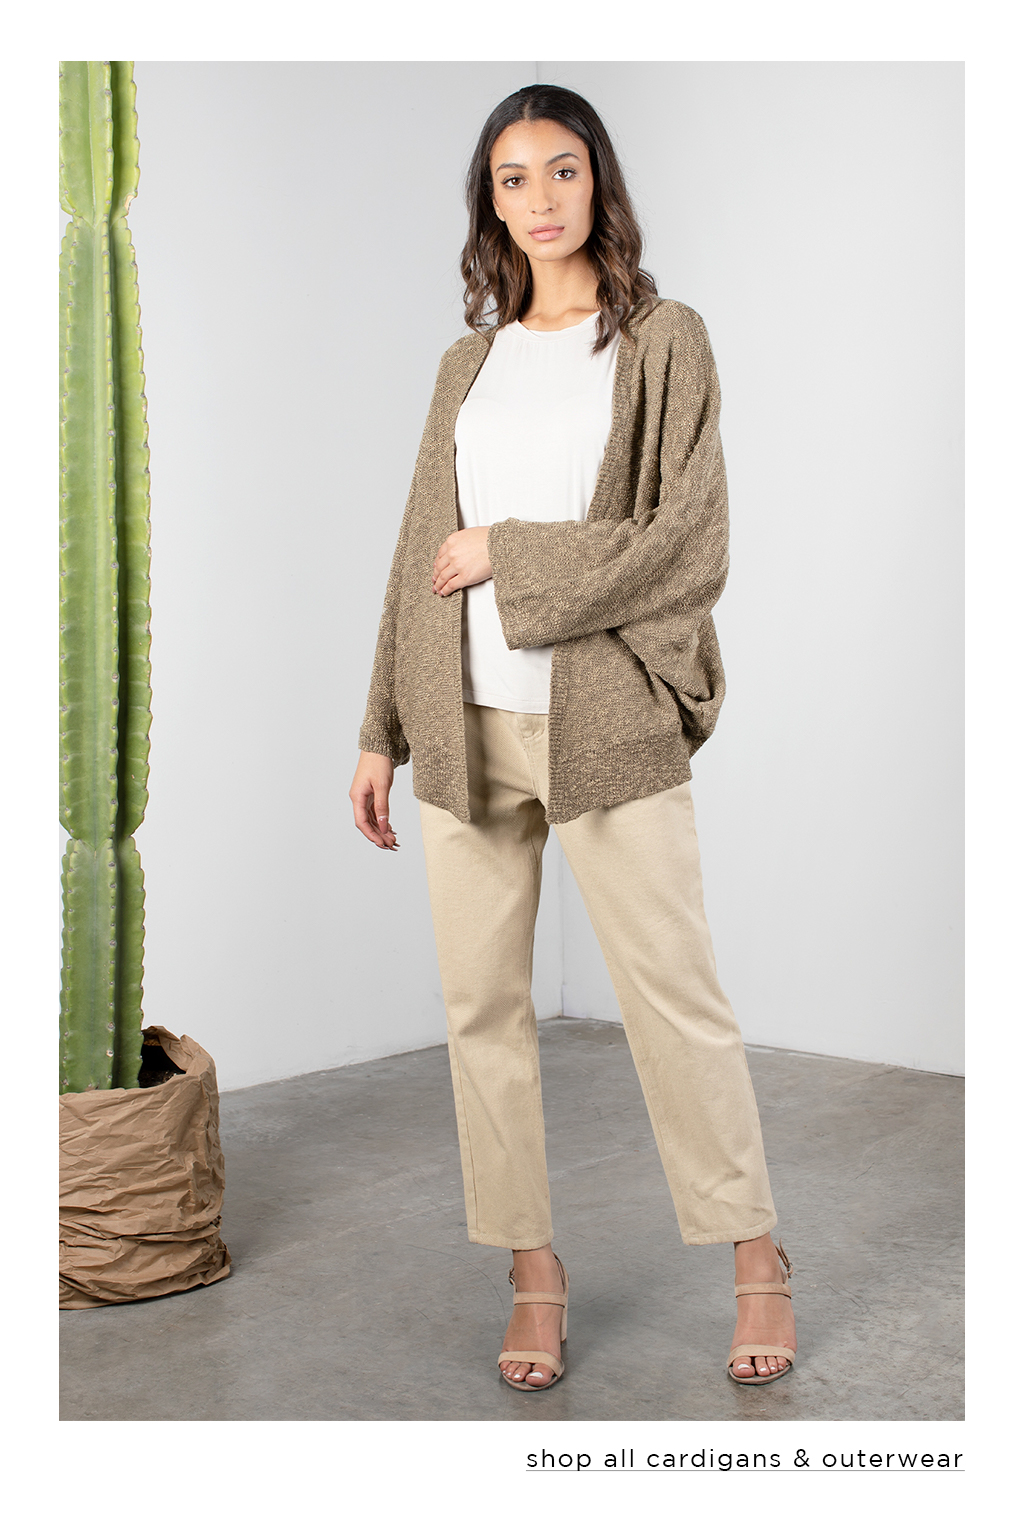 Shop All Cardigans & Outerwear